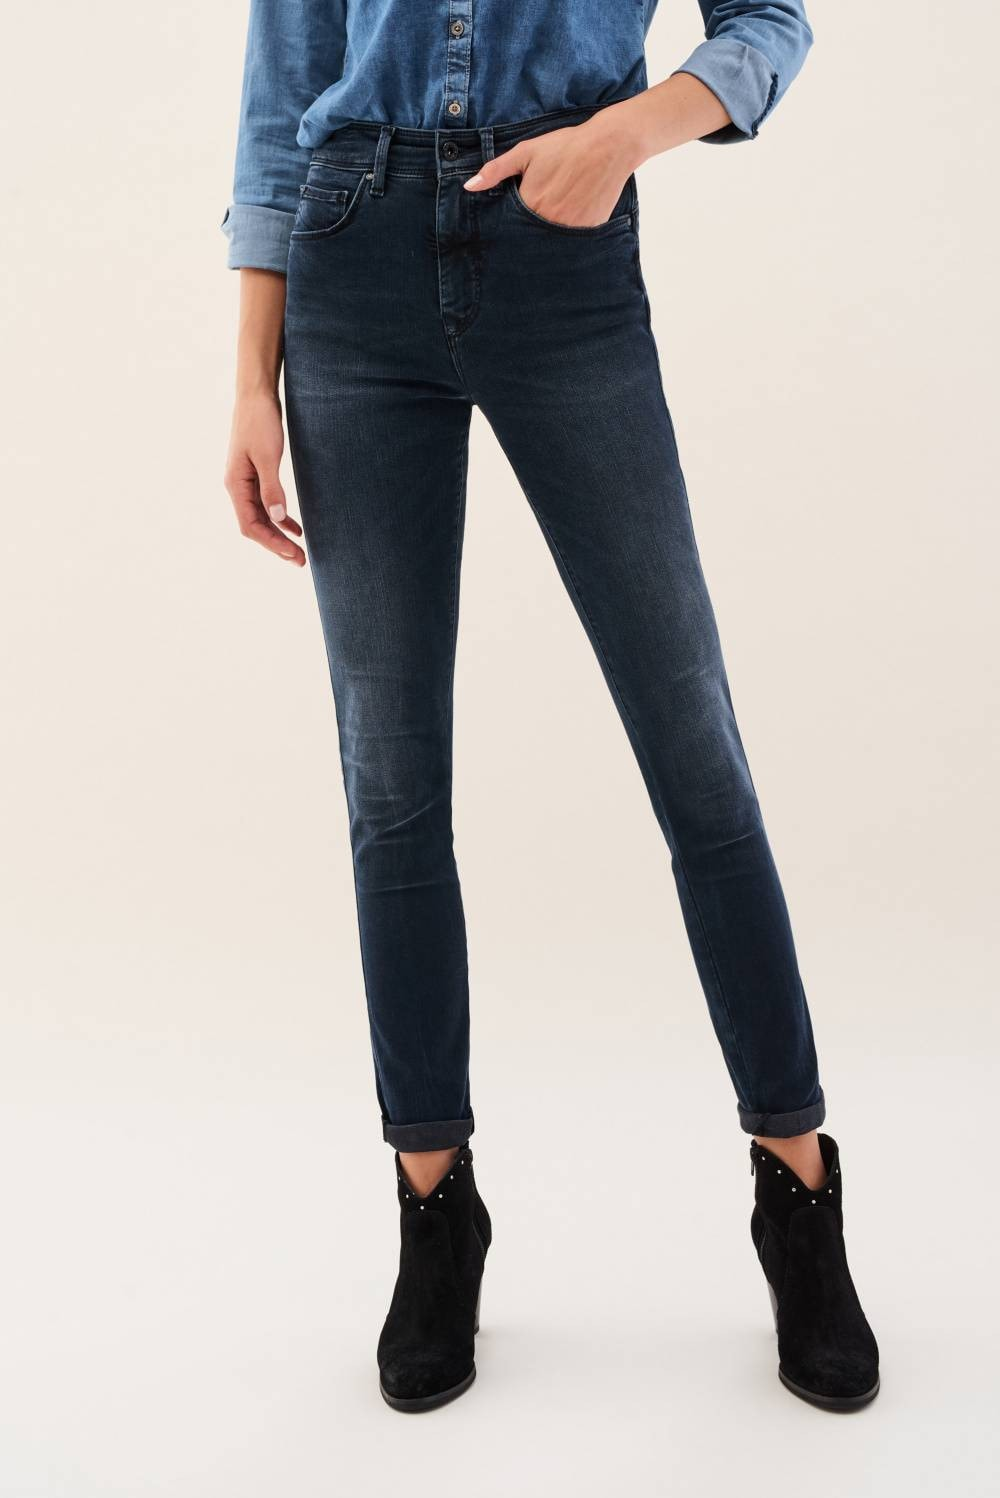 Dark denim Secret Glamour jeans - Salsa